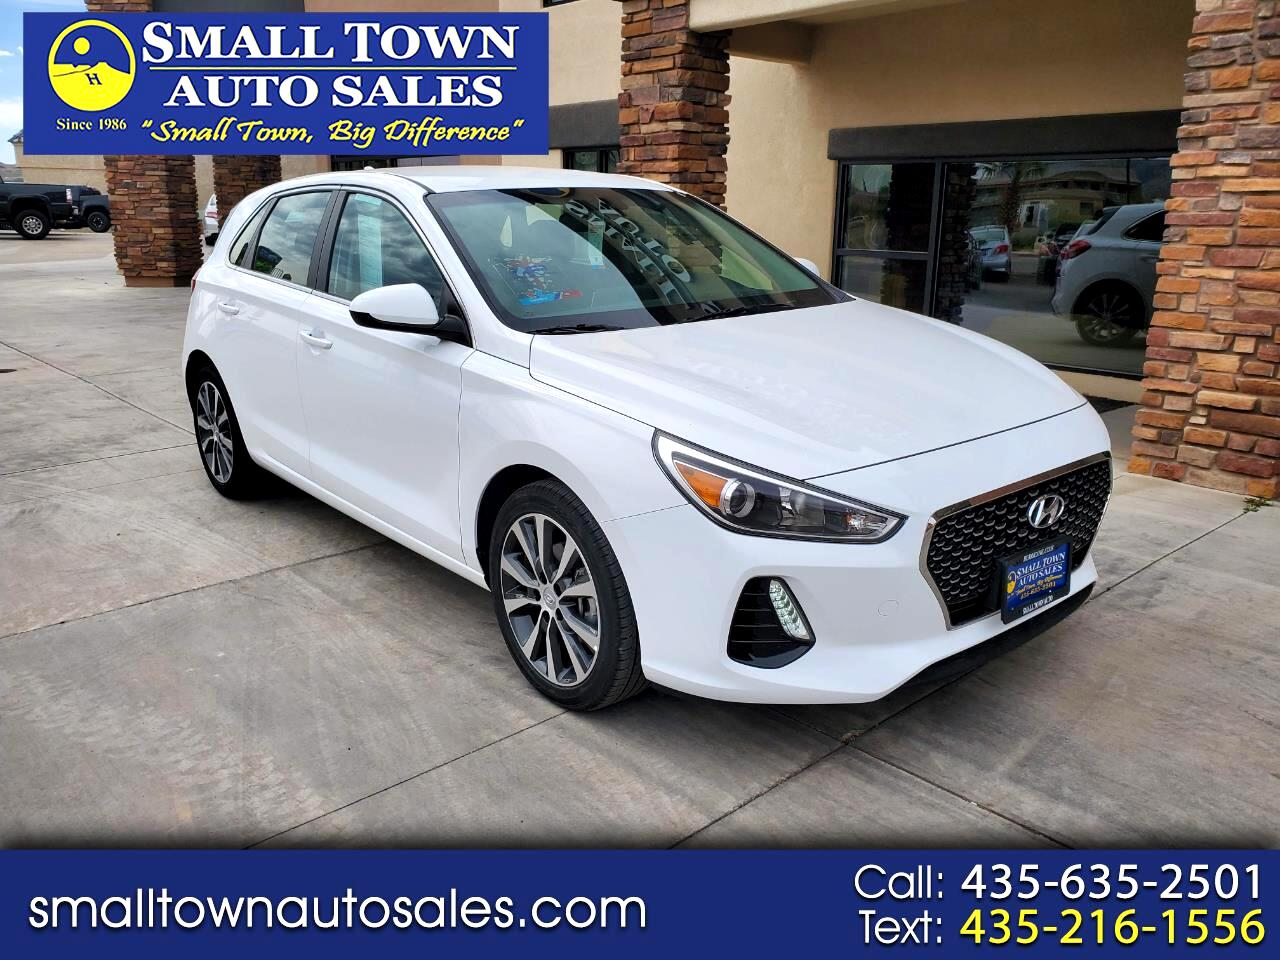 Gt Auto Sales >> Used Cars For Sale Hurricane Ut 84737 Small Town Auto Sales